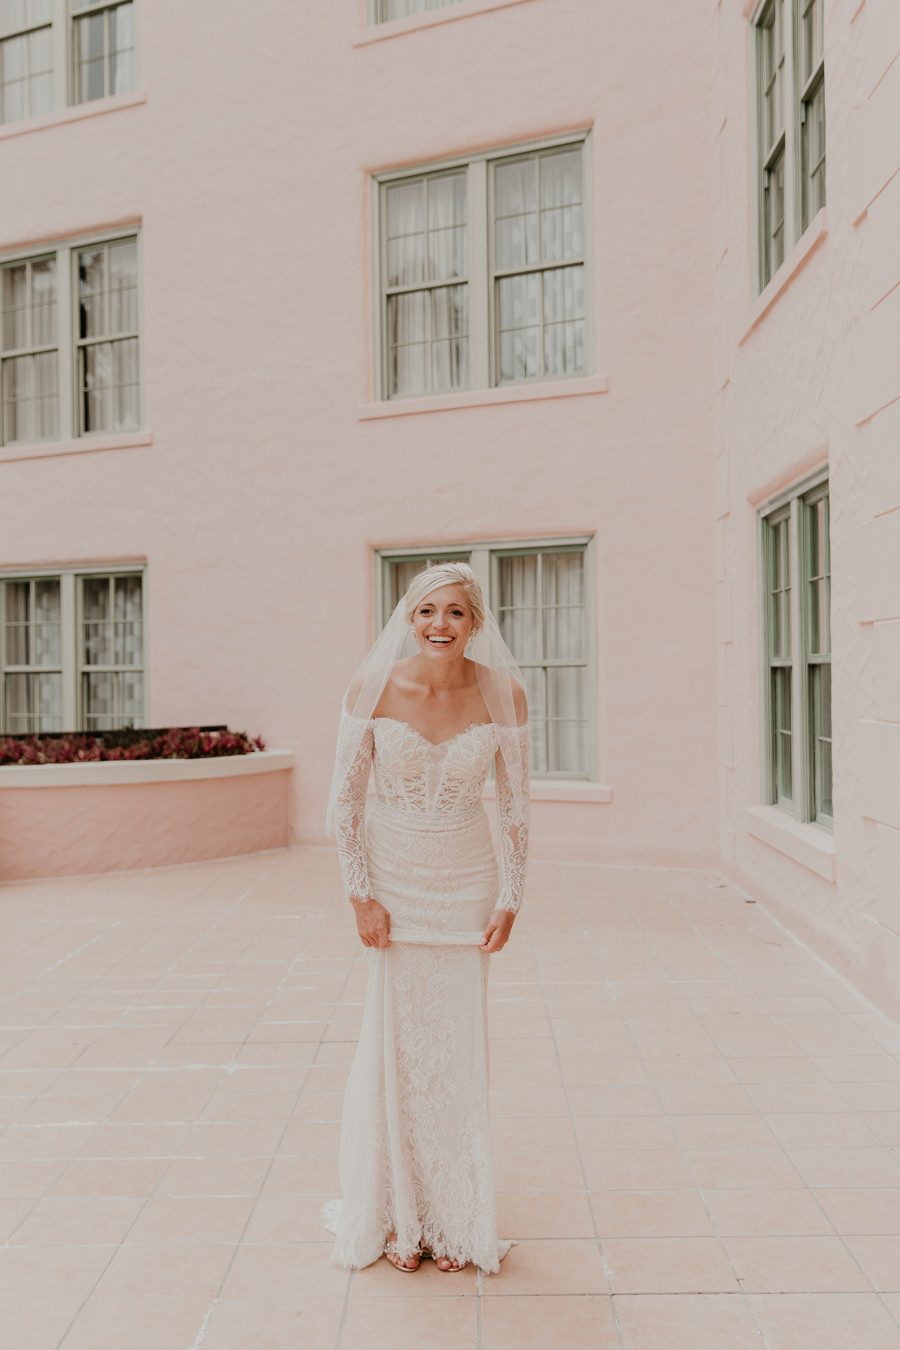 Neely rose gold boho wedding in st pete vinoy A and be Miami first baptist of st pete park shore grill Tampa Wedding Photographer -65.jpg